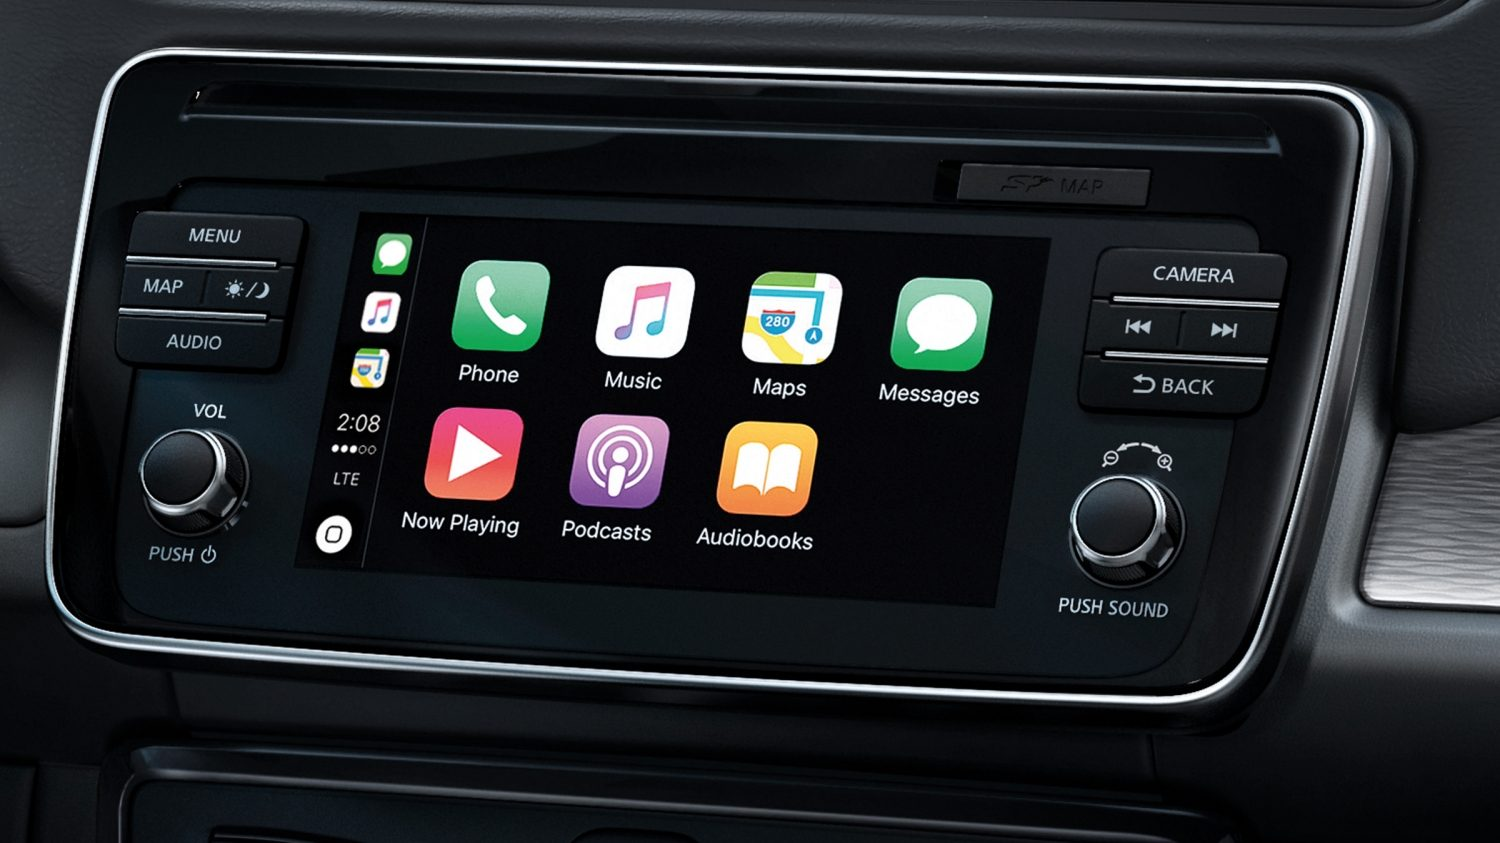 Écran de navigation de la Nouvelle NISSAN LEAF affichant Apple CarPlay